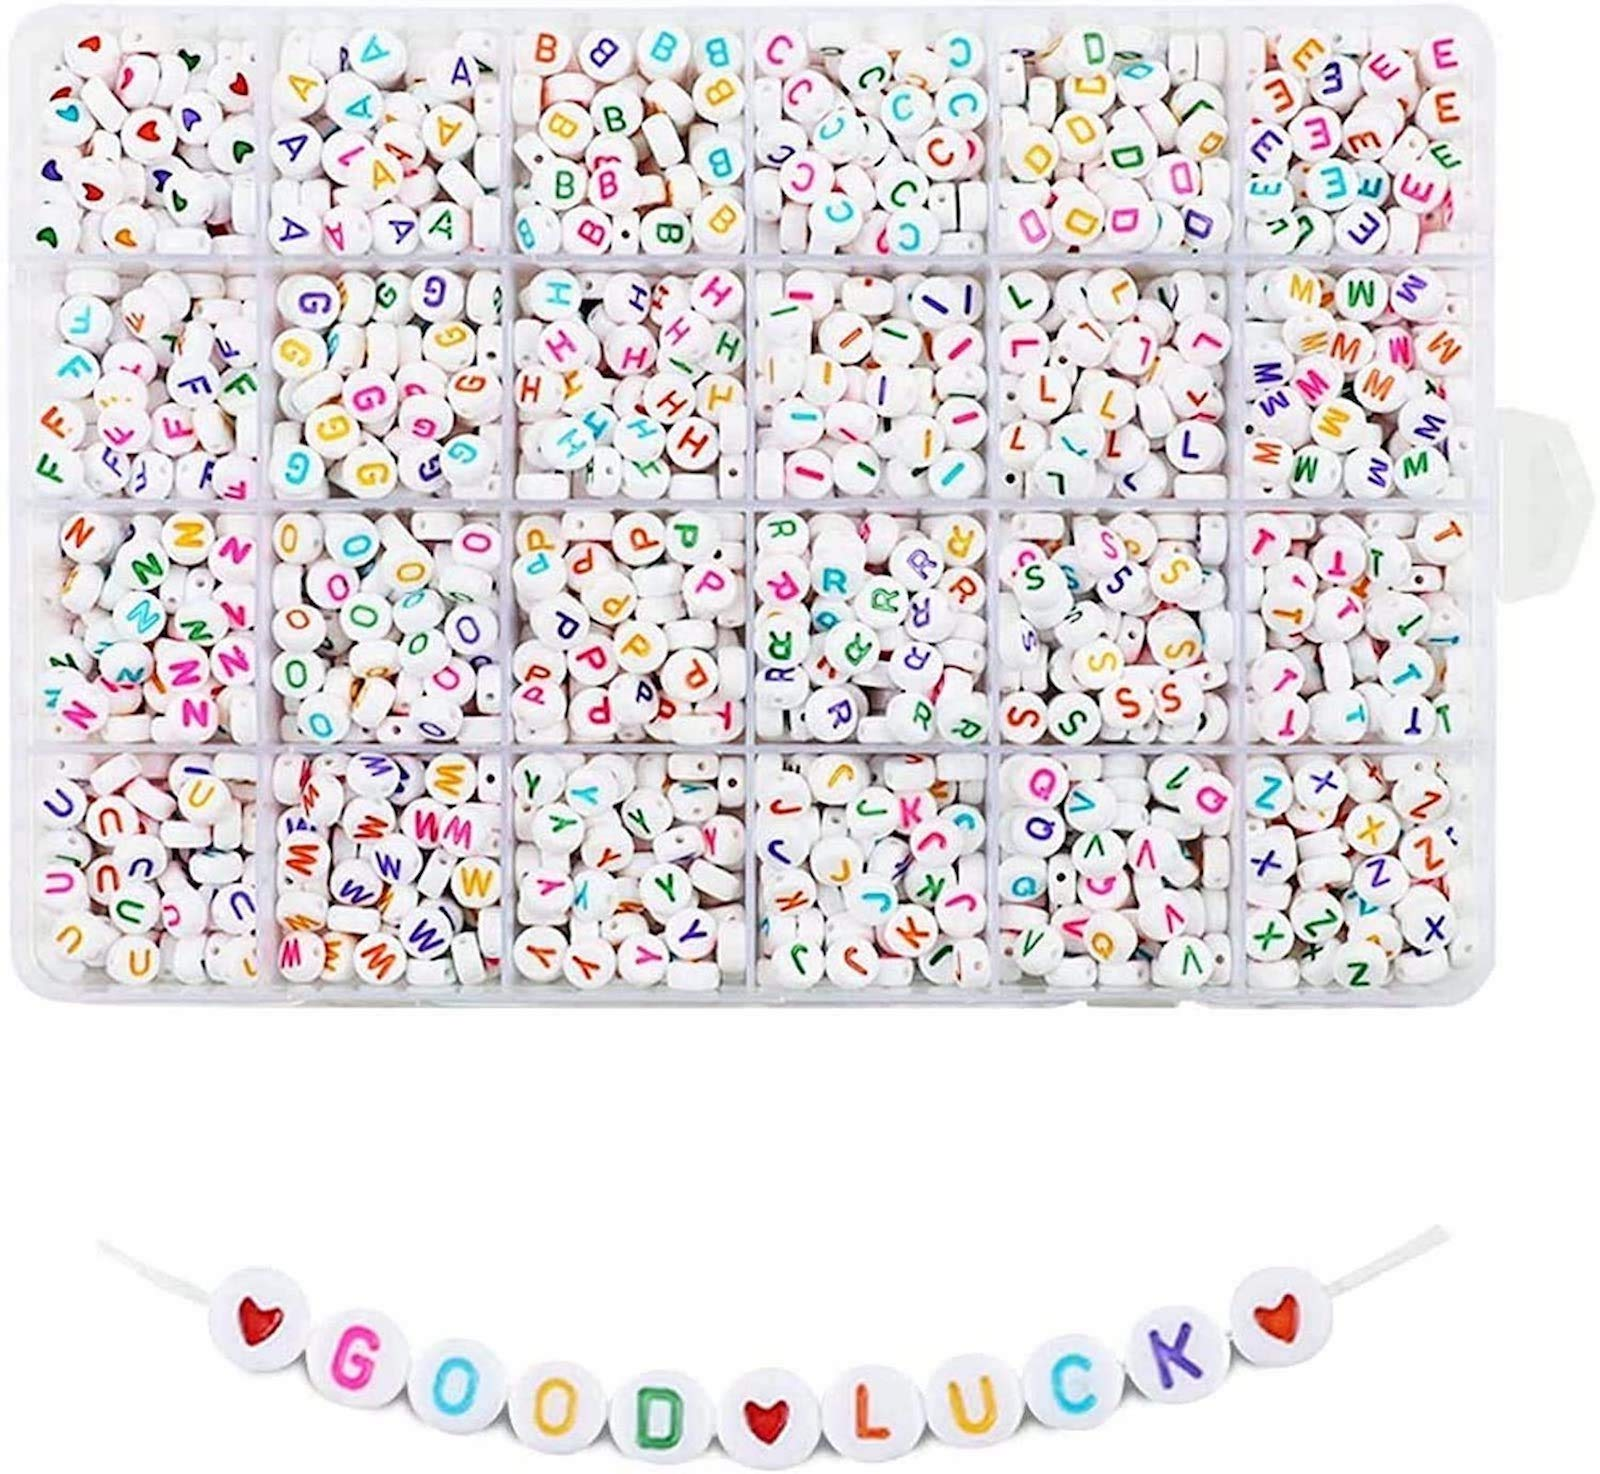 Quefe 1680pcs 4 x 7mm Letter Beads White Round Acrylic Alphabet Beads for Jewelry Making Bracelets Necklaces Key Chains, Each Letter Included